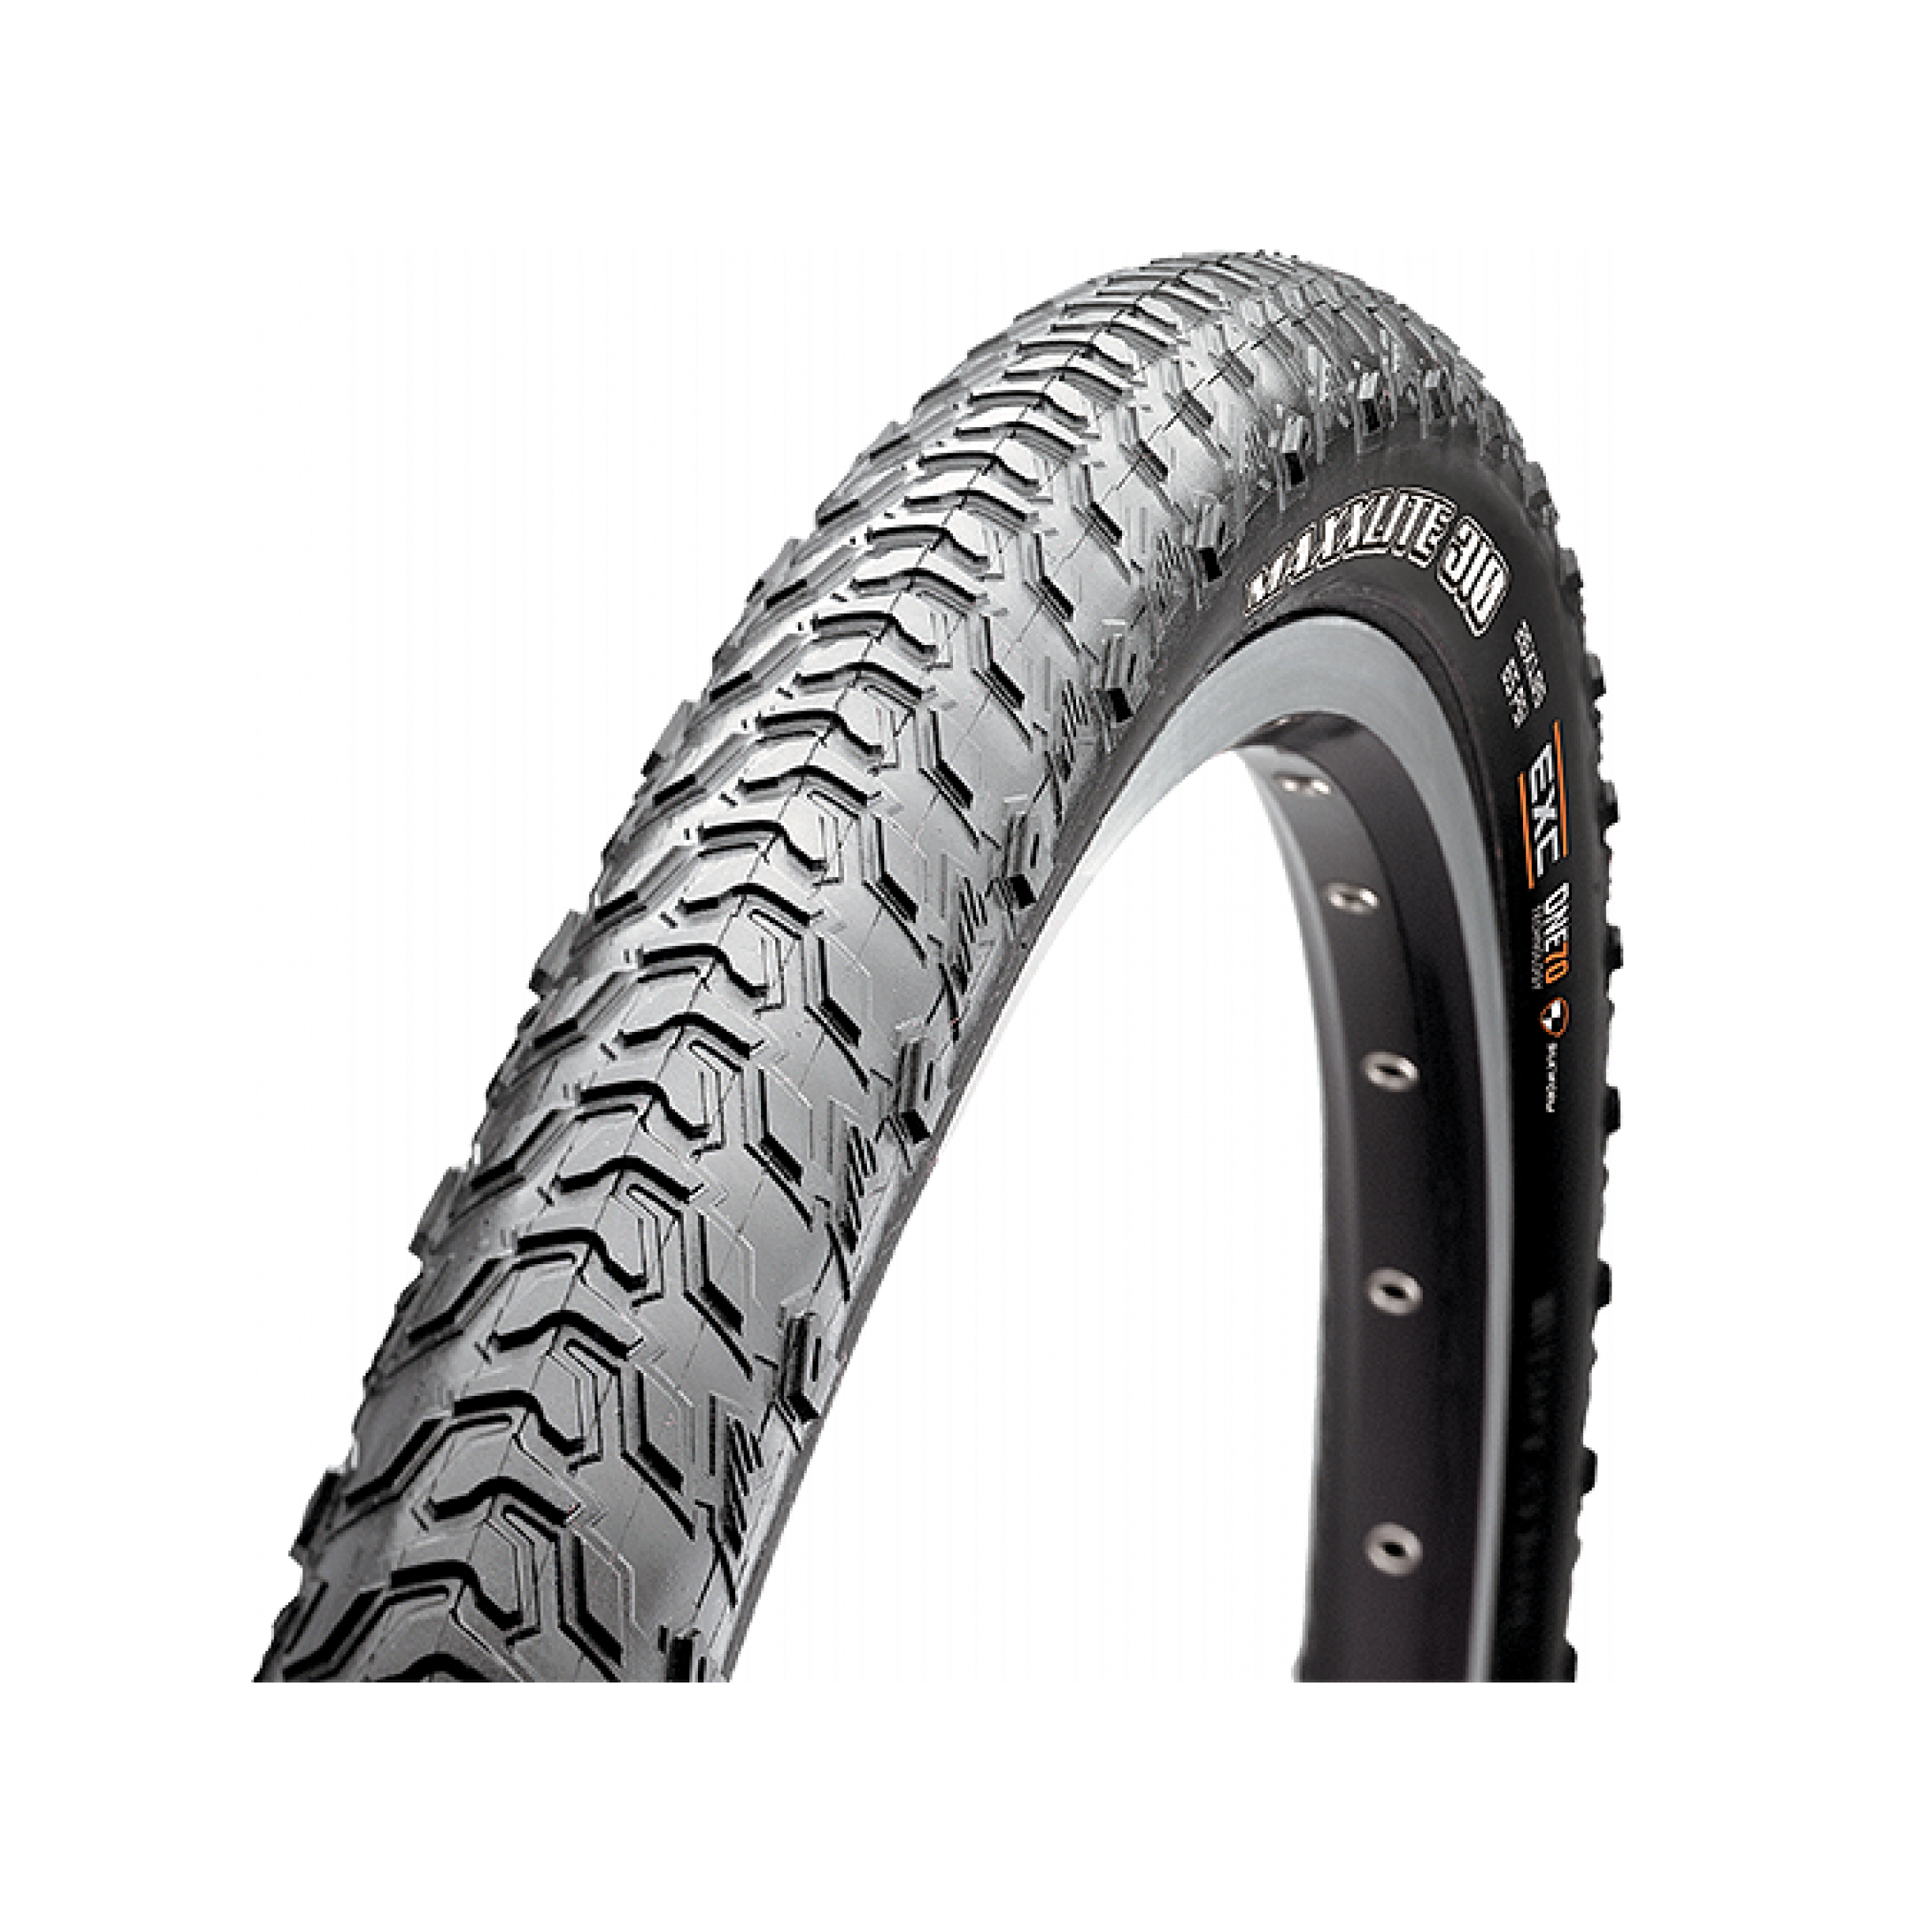 Фото Покрышка 27.5″x1.95″ MAXXIS PACE 60TPI